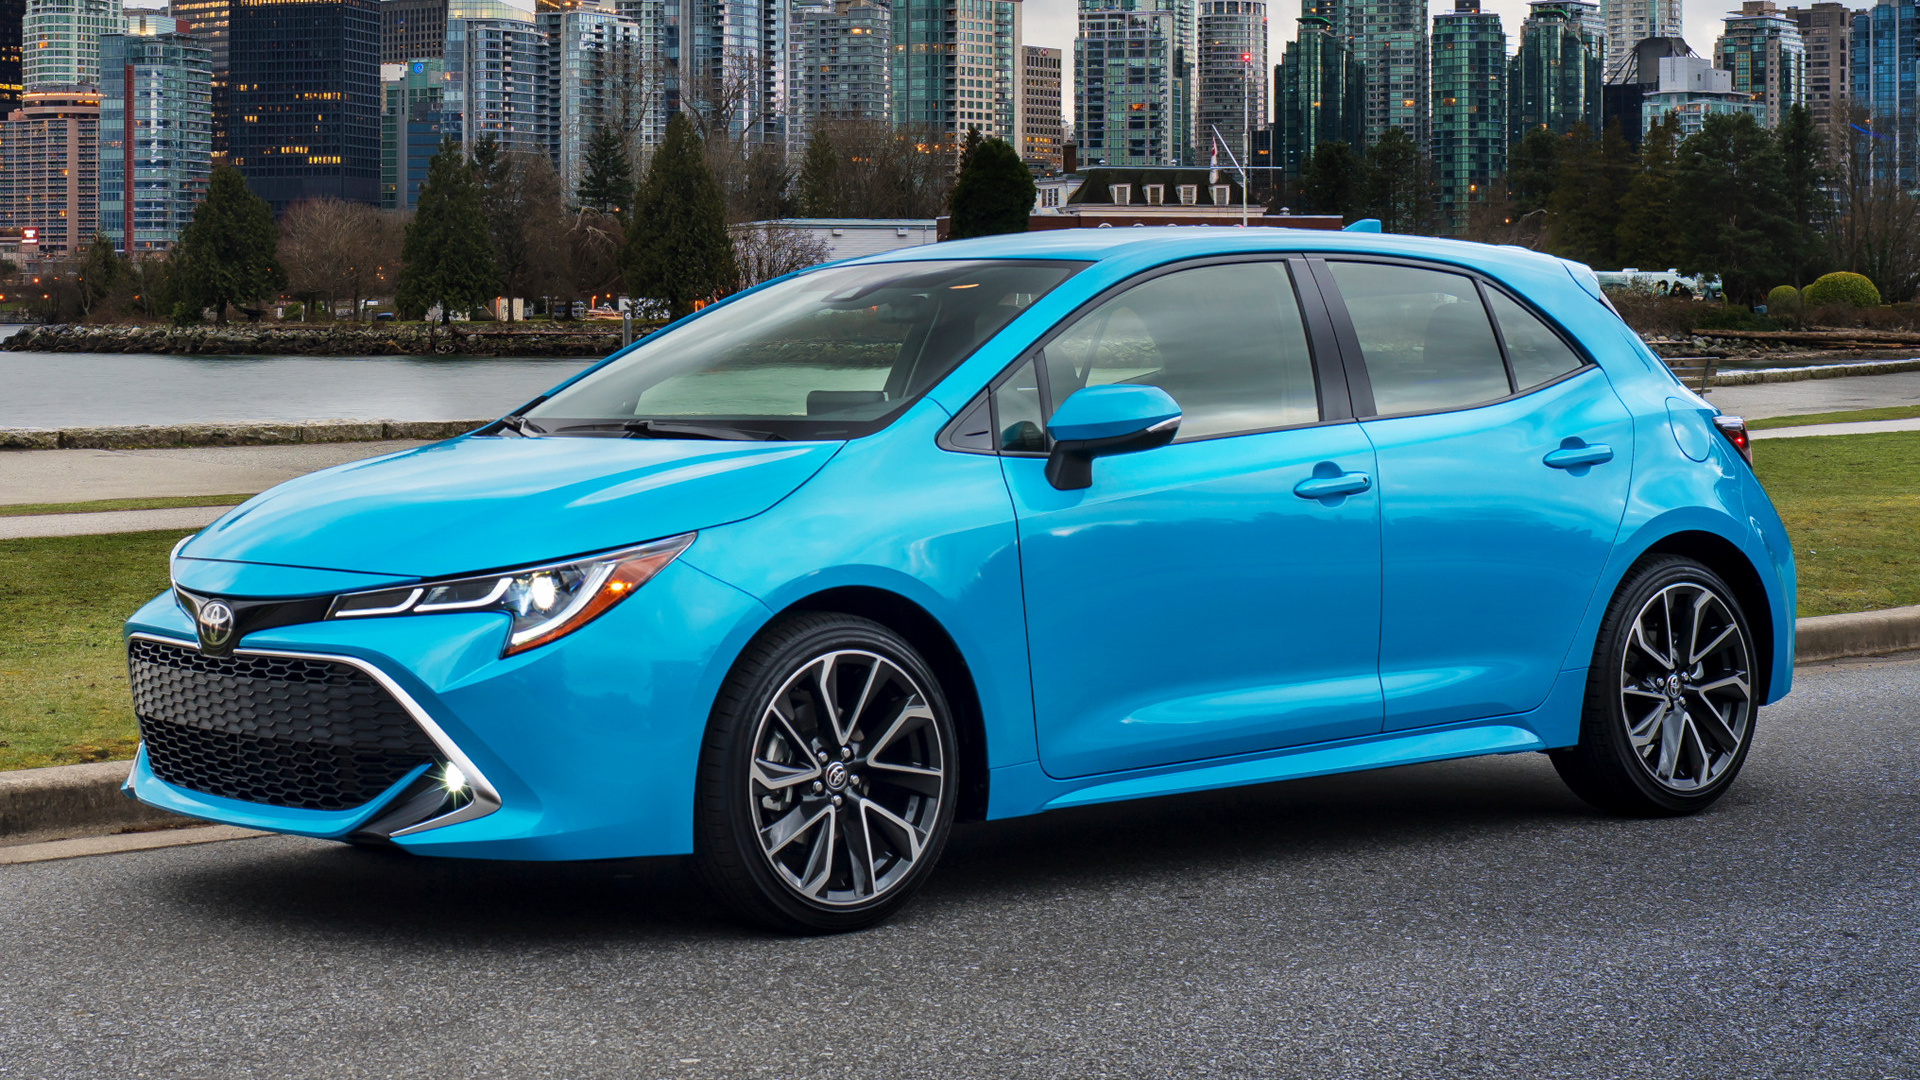 2019 Toyota Corolla Xse Hatchback Wallpapers And Hd